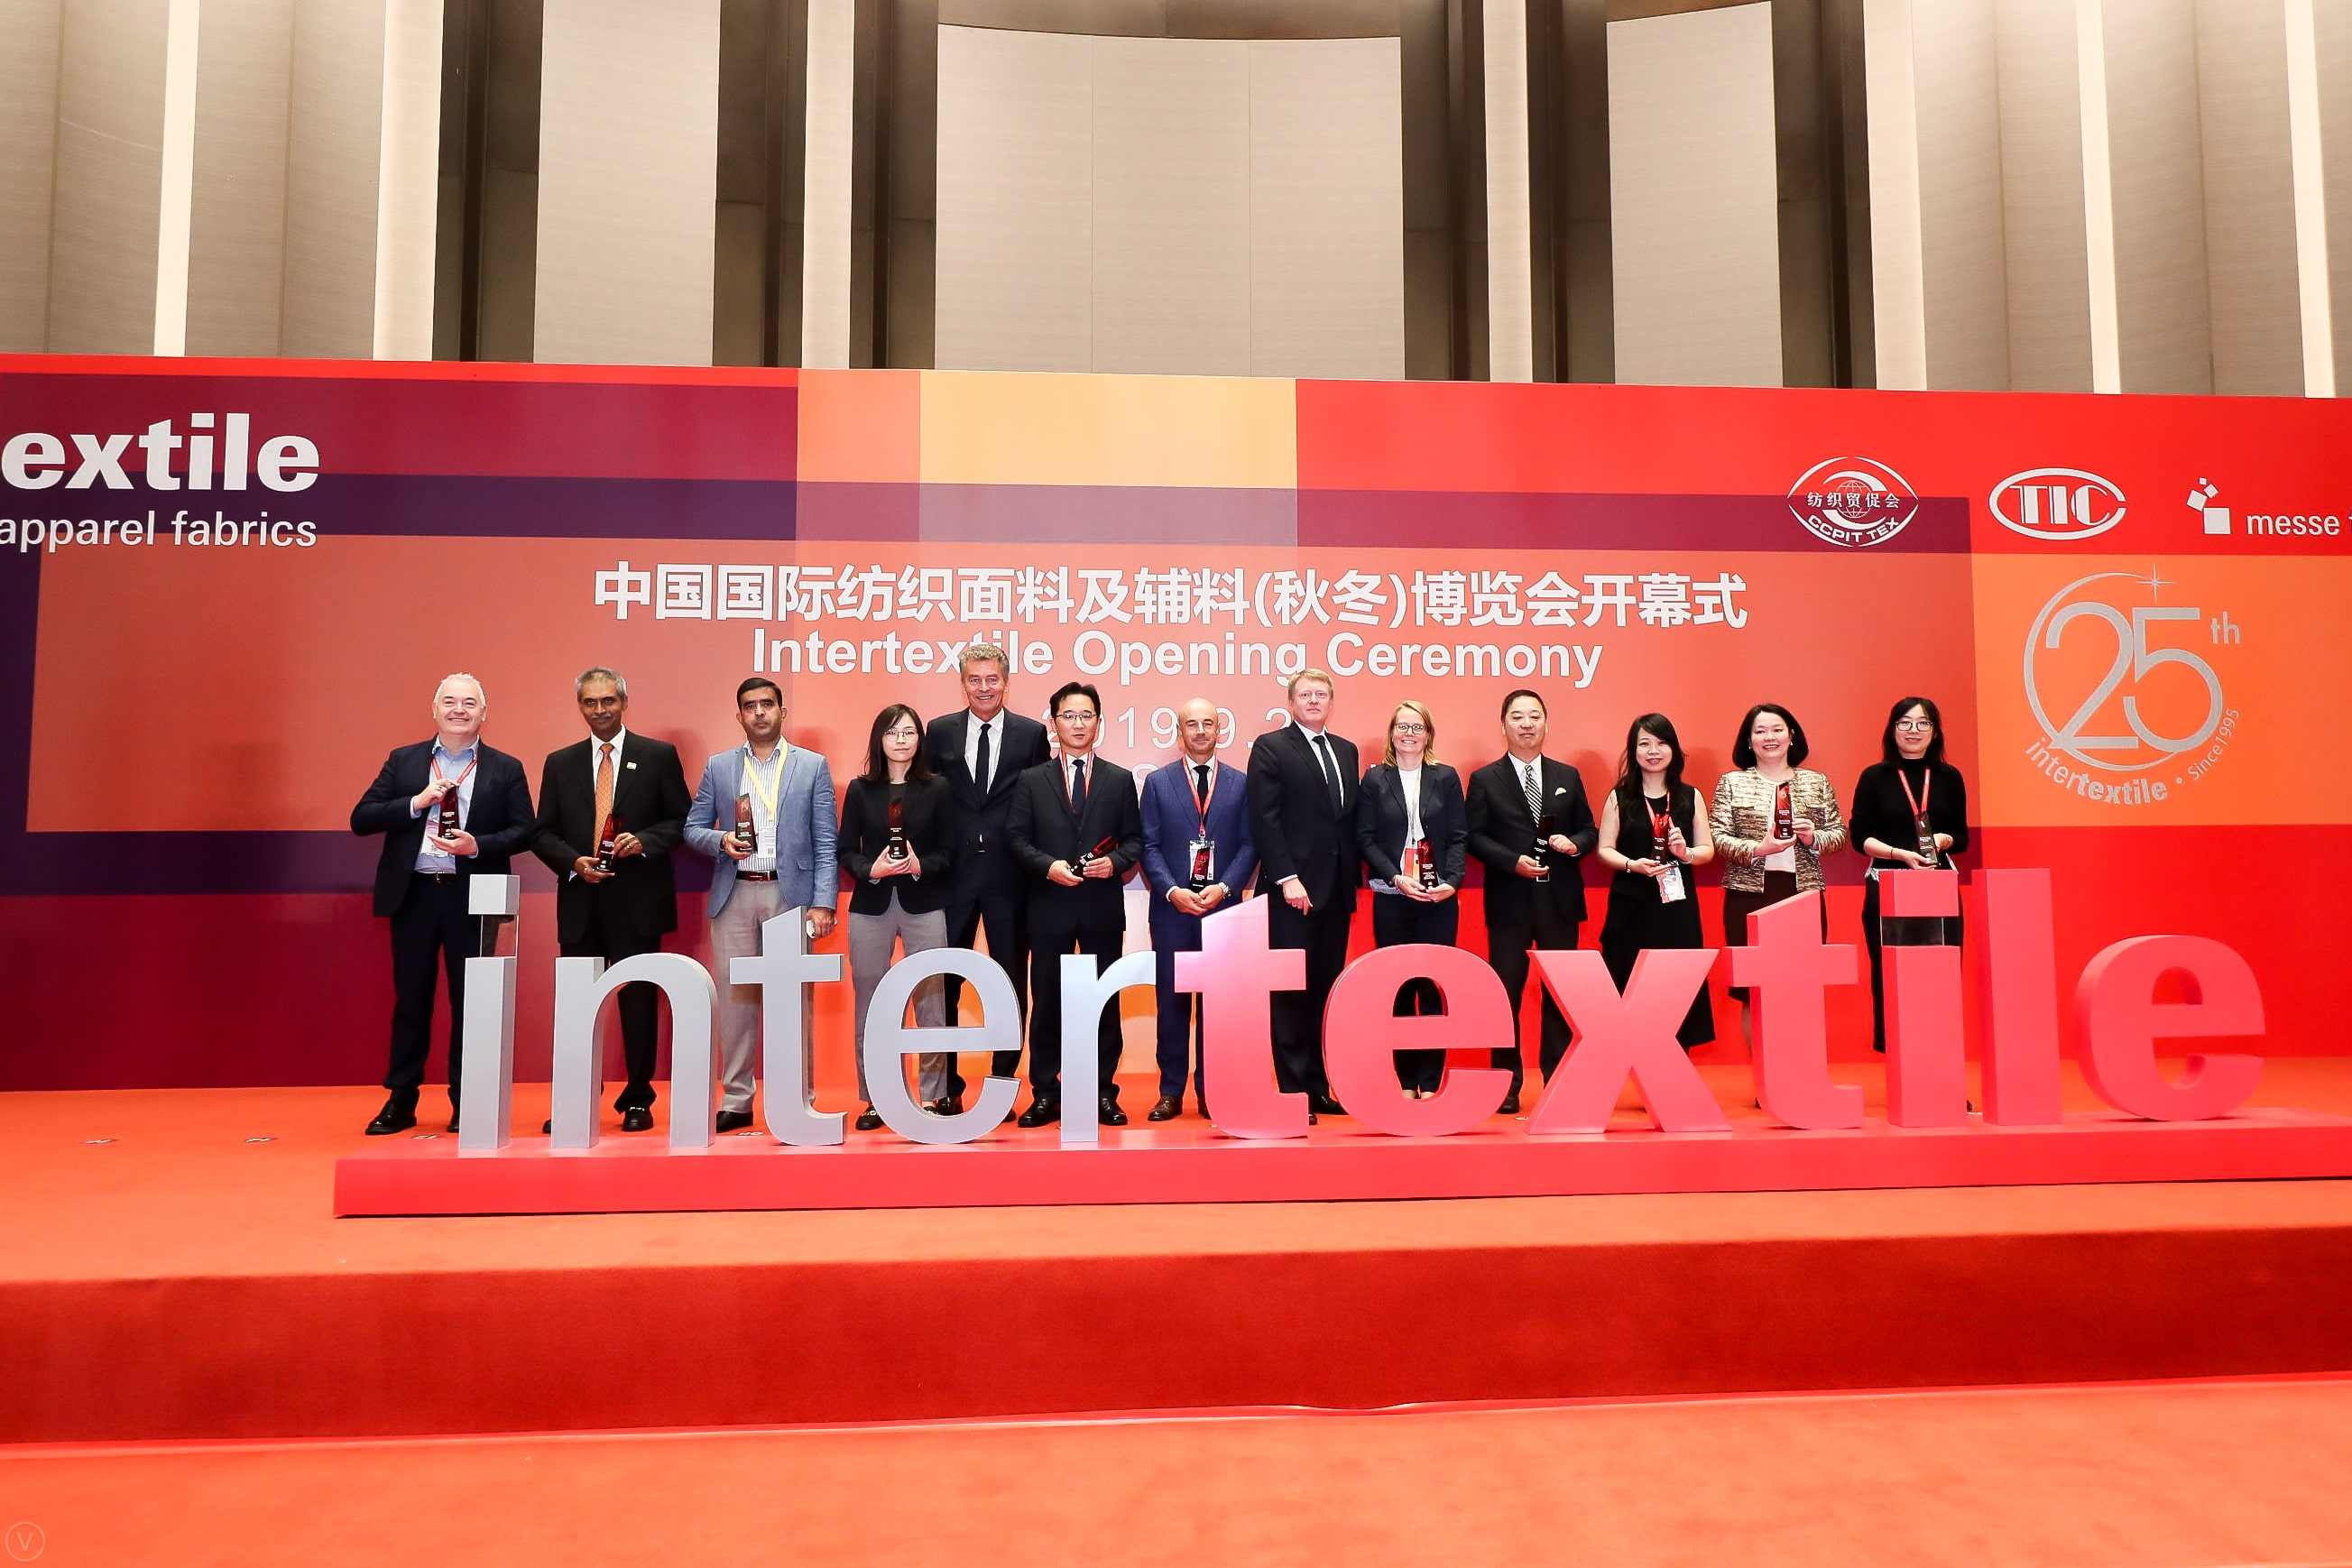 Dr. K.V. Srinivasan, Chairman, TEXPROCIL 2nd from left at the Opening Ceremony of Intertextile Shanghai, China 2019